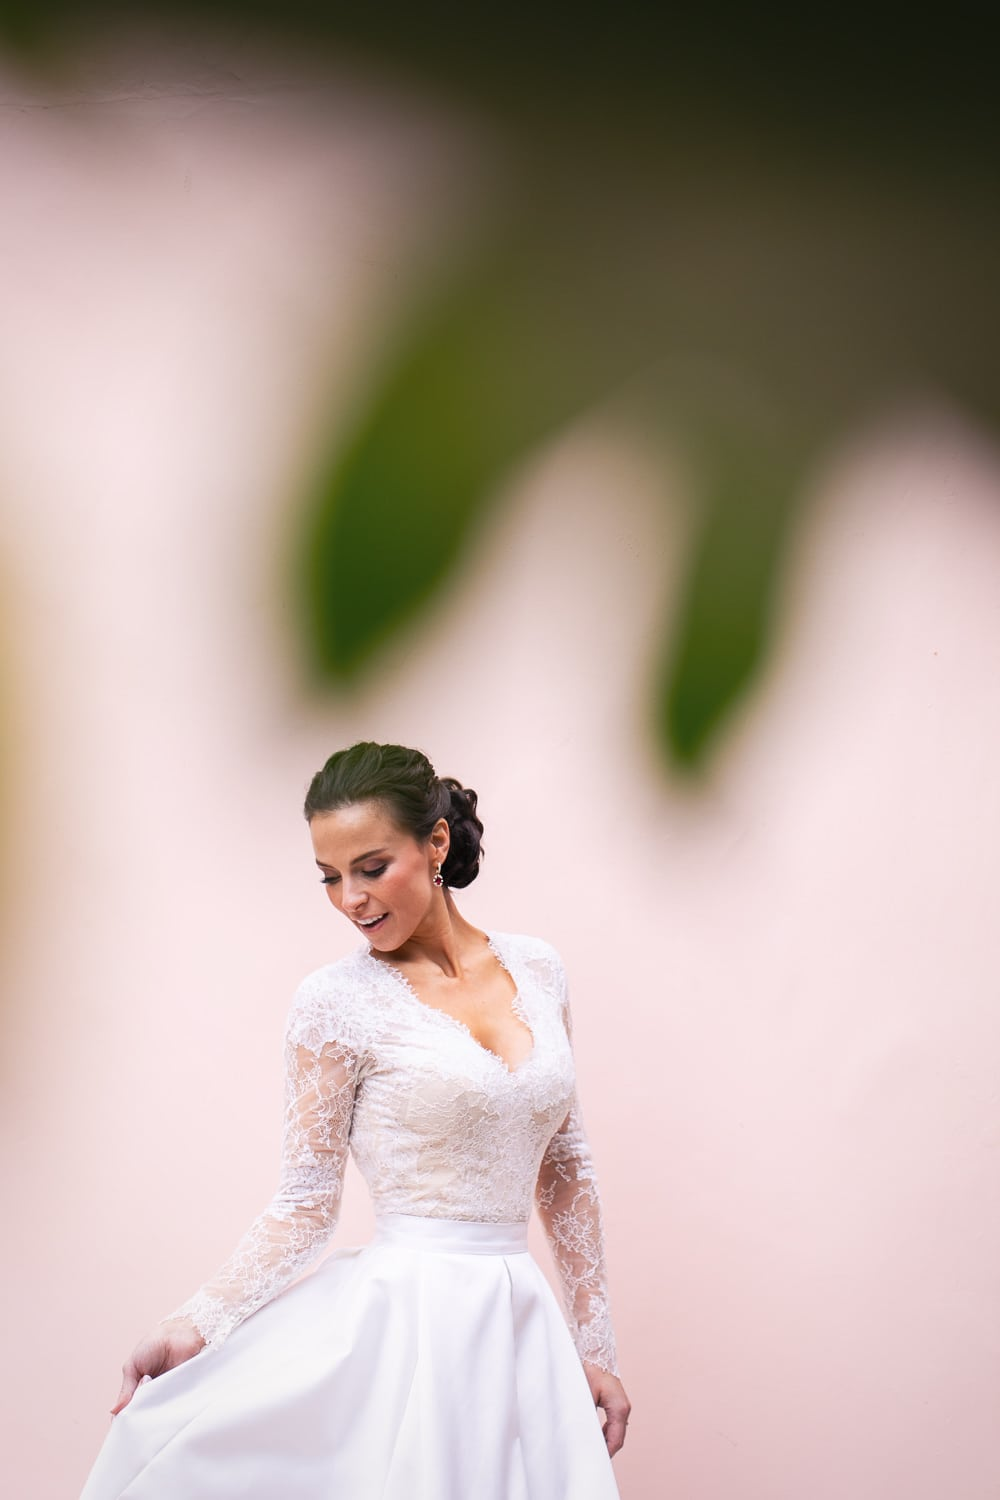 Best place for bride photo at Hotel Bel-Air